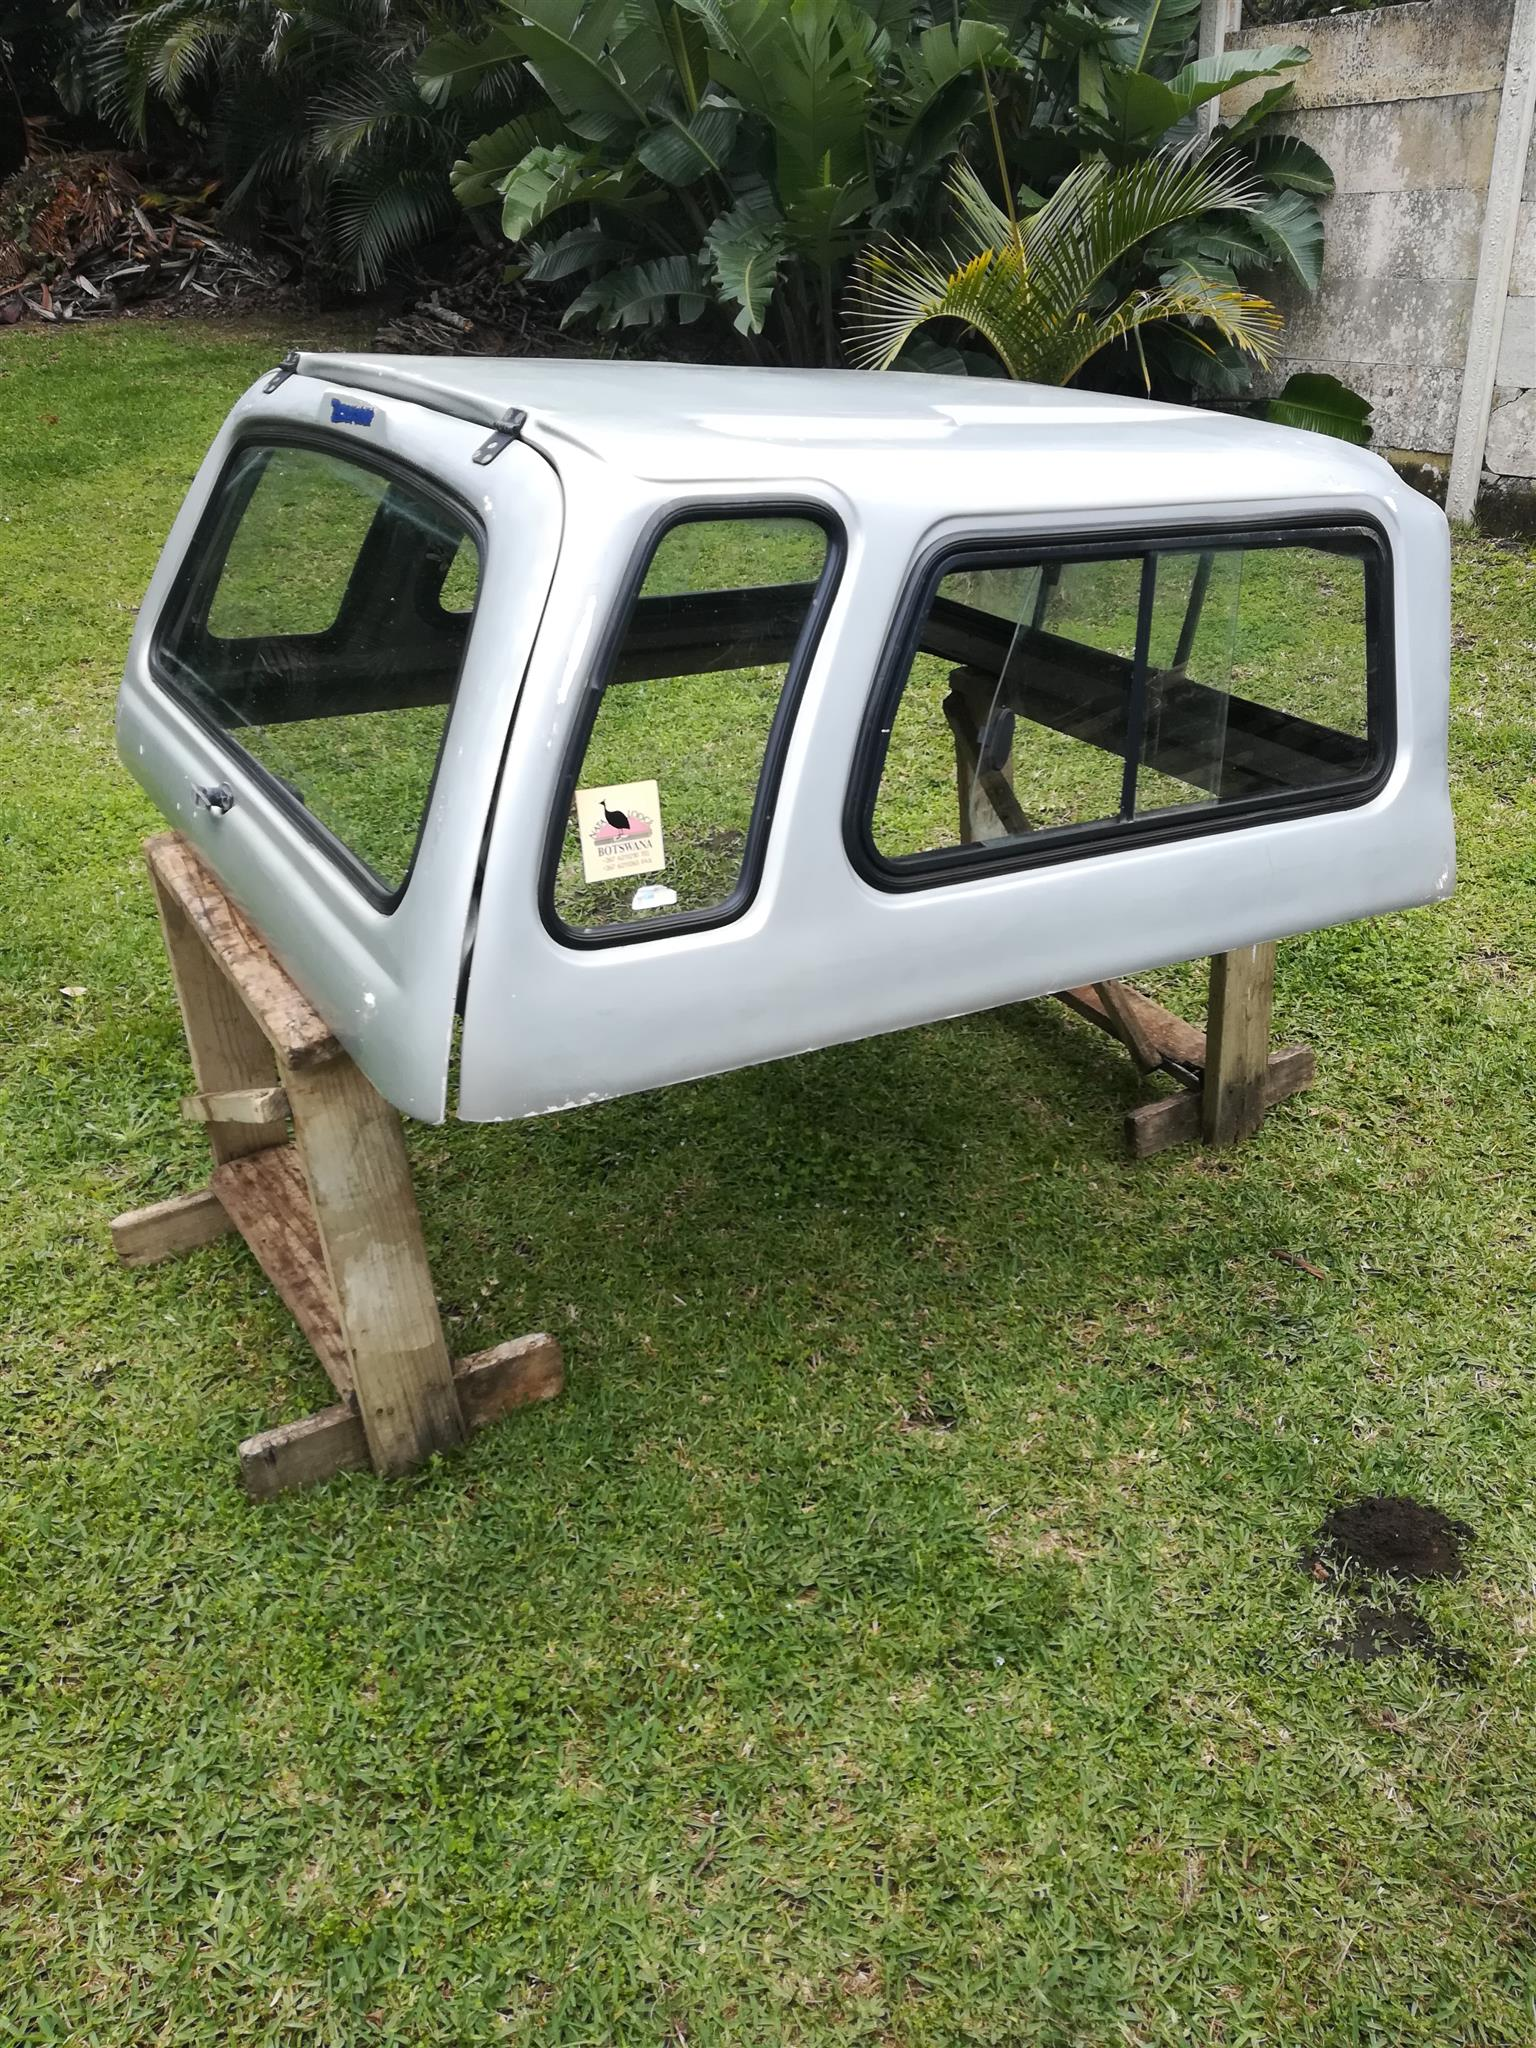 Mitsubishi Colt Double cab canopy